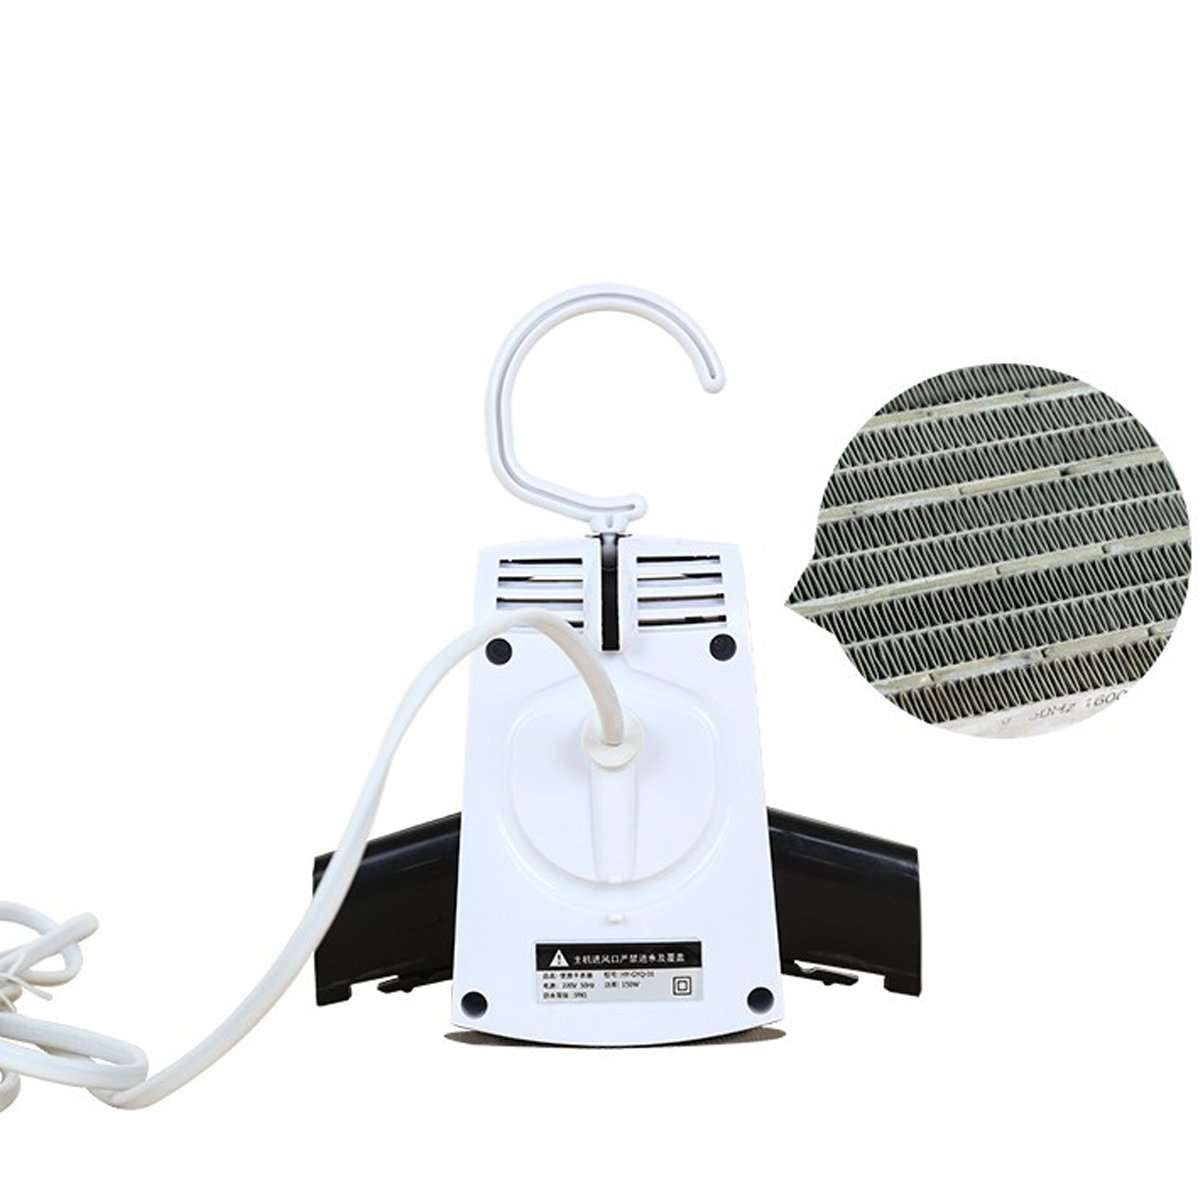 Portable Electric Clothing Dryer Hanger - Discounts You May Like